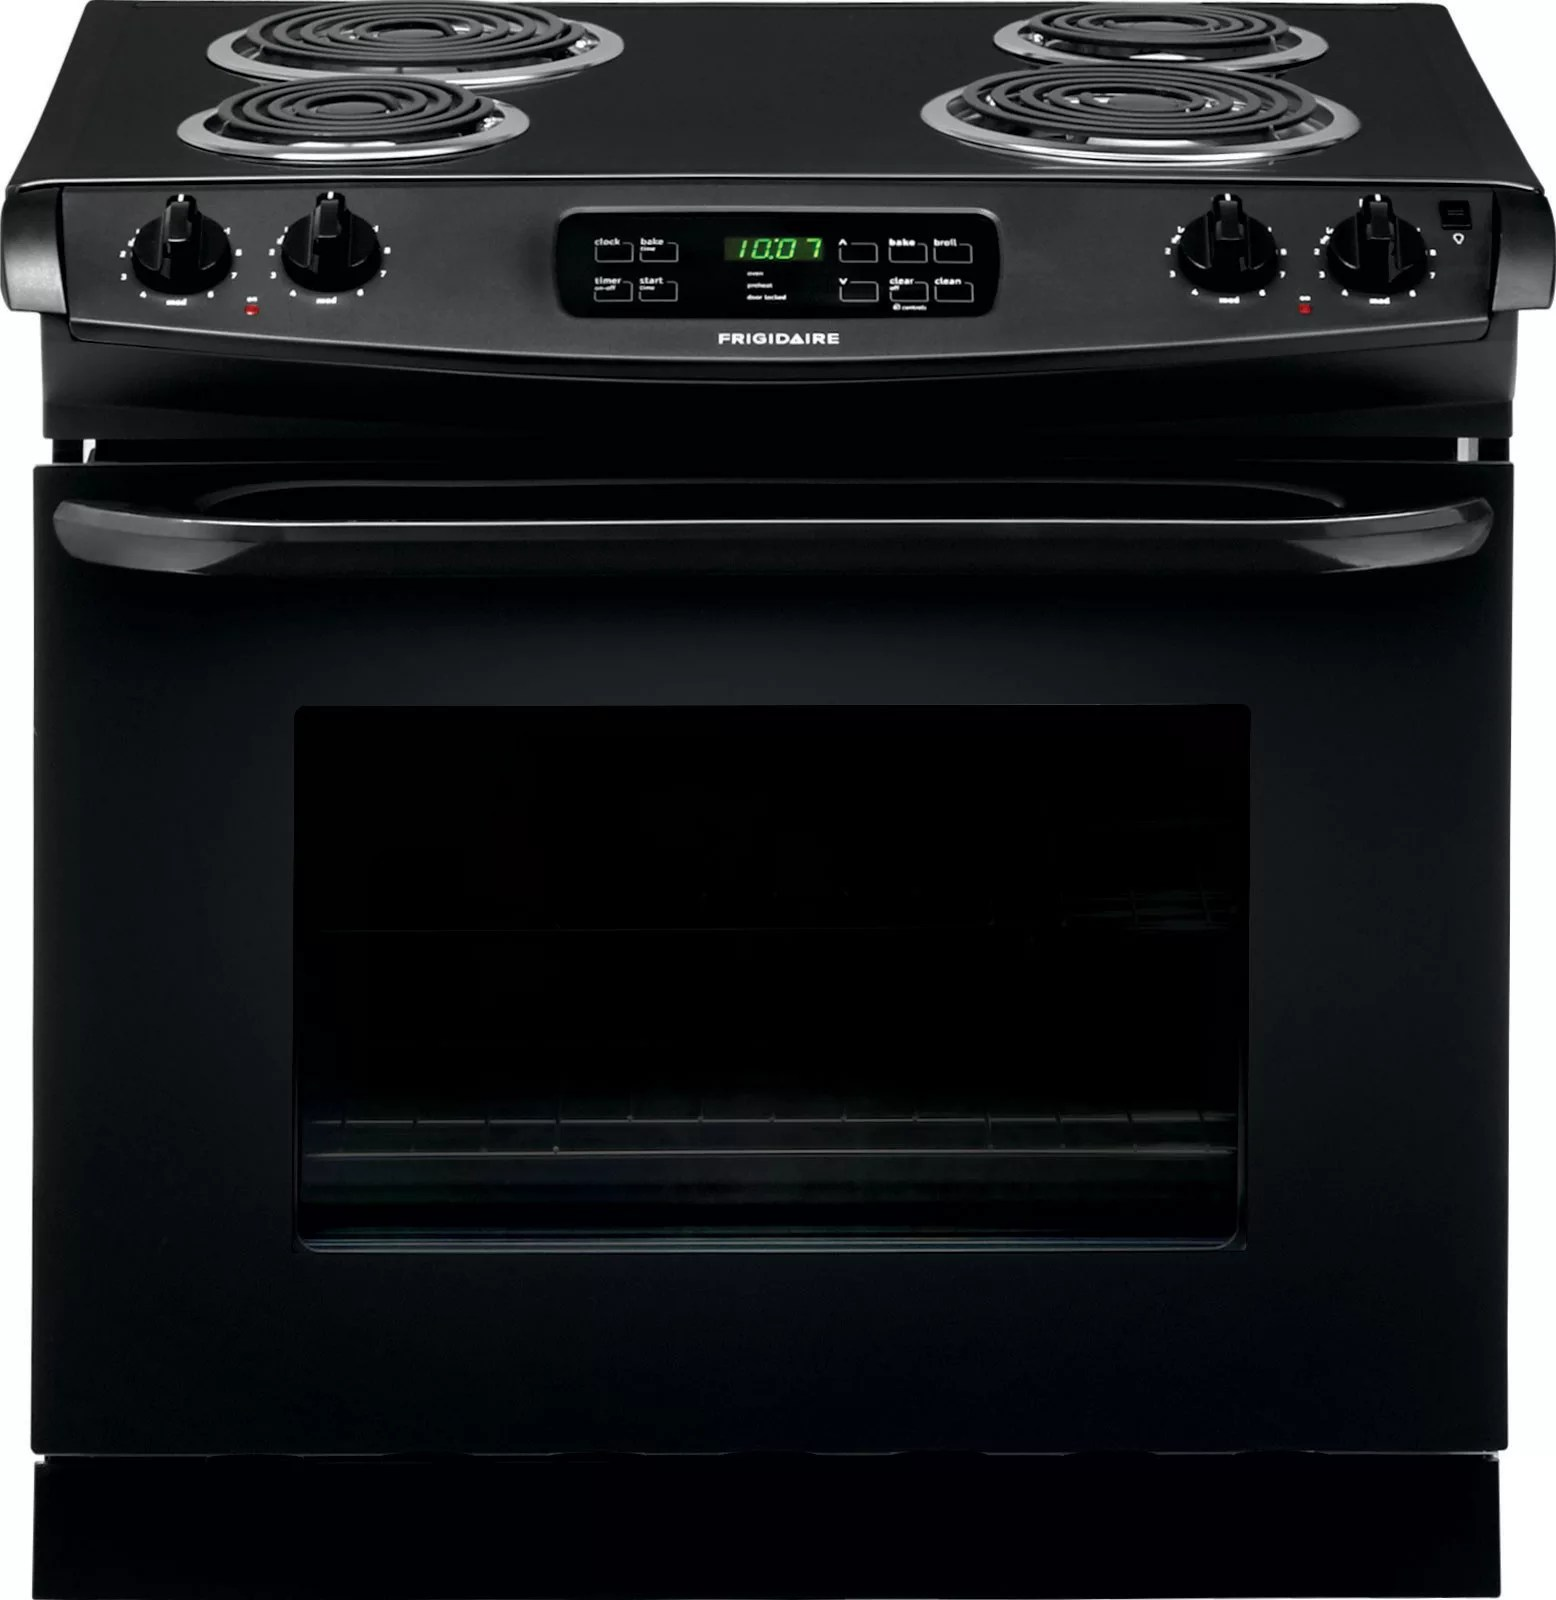 Calm Multiple Broiloptions Multiple Drop Stoves Electric Sears Coil Frigidaire Inch Electric Range Frigidaire Inch Electric Range Stoves Gas Drop houzz 01 Drop In Stove